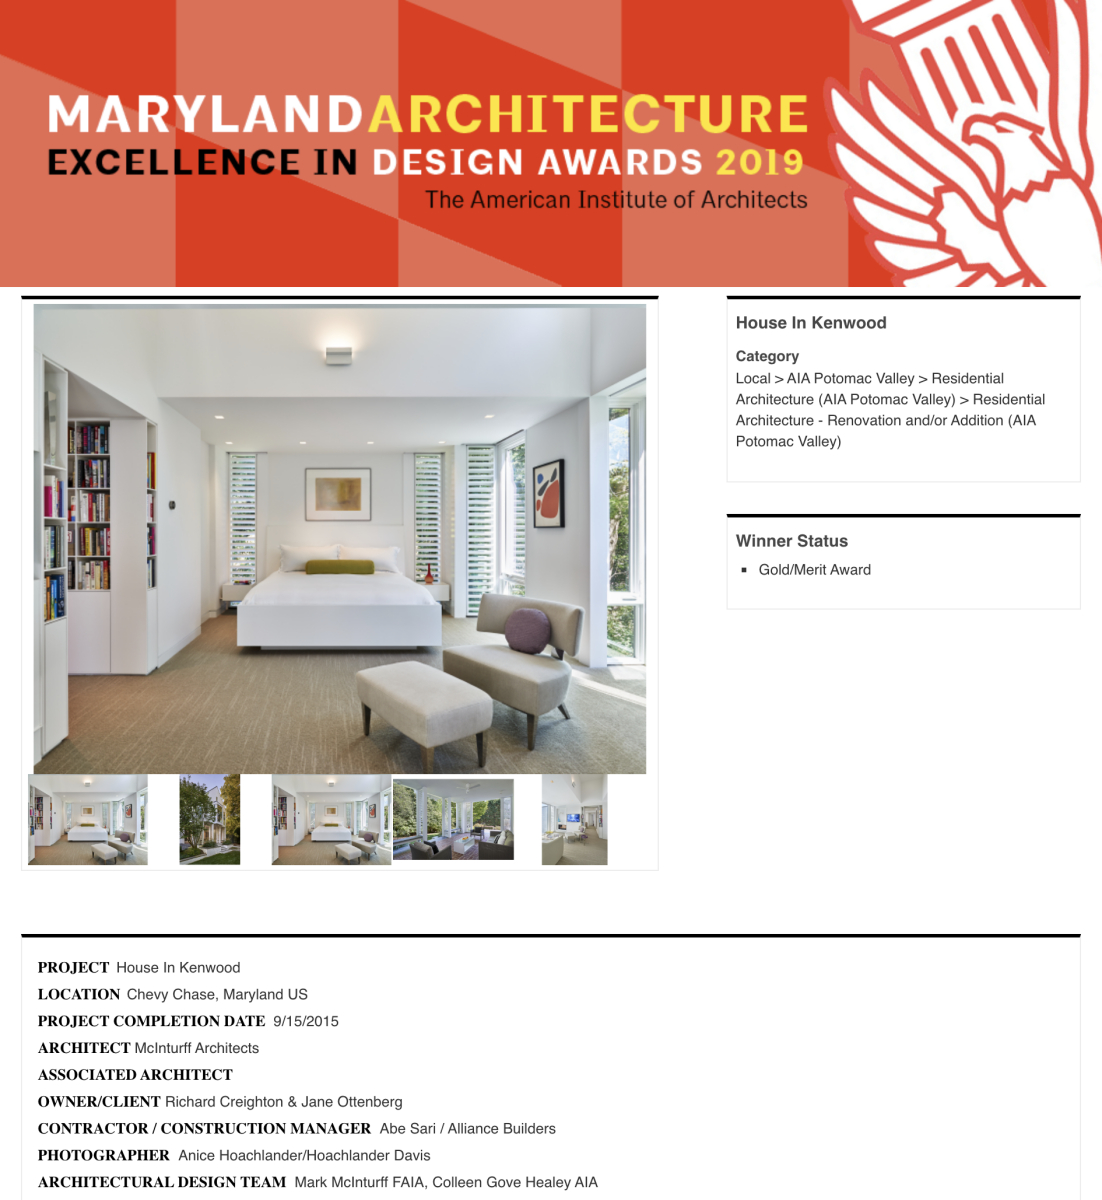 AIA of Potomac Valley 2017 Gold Award of Merit in Residential Architecture to McInturff Architects